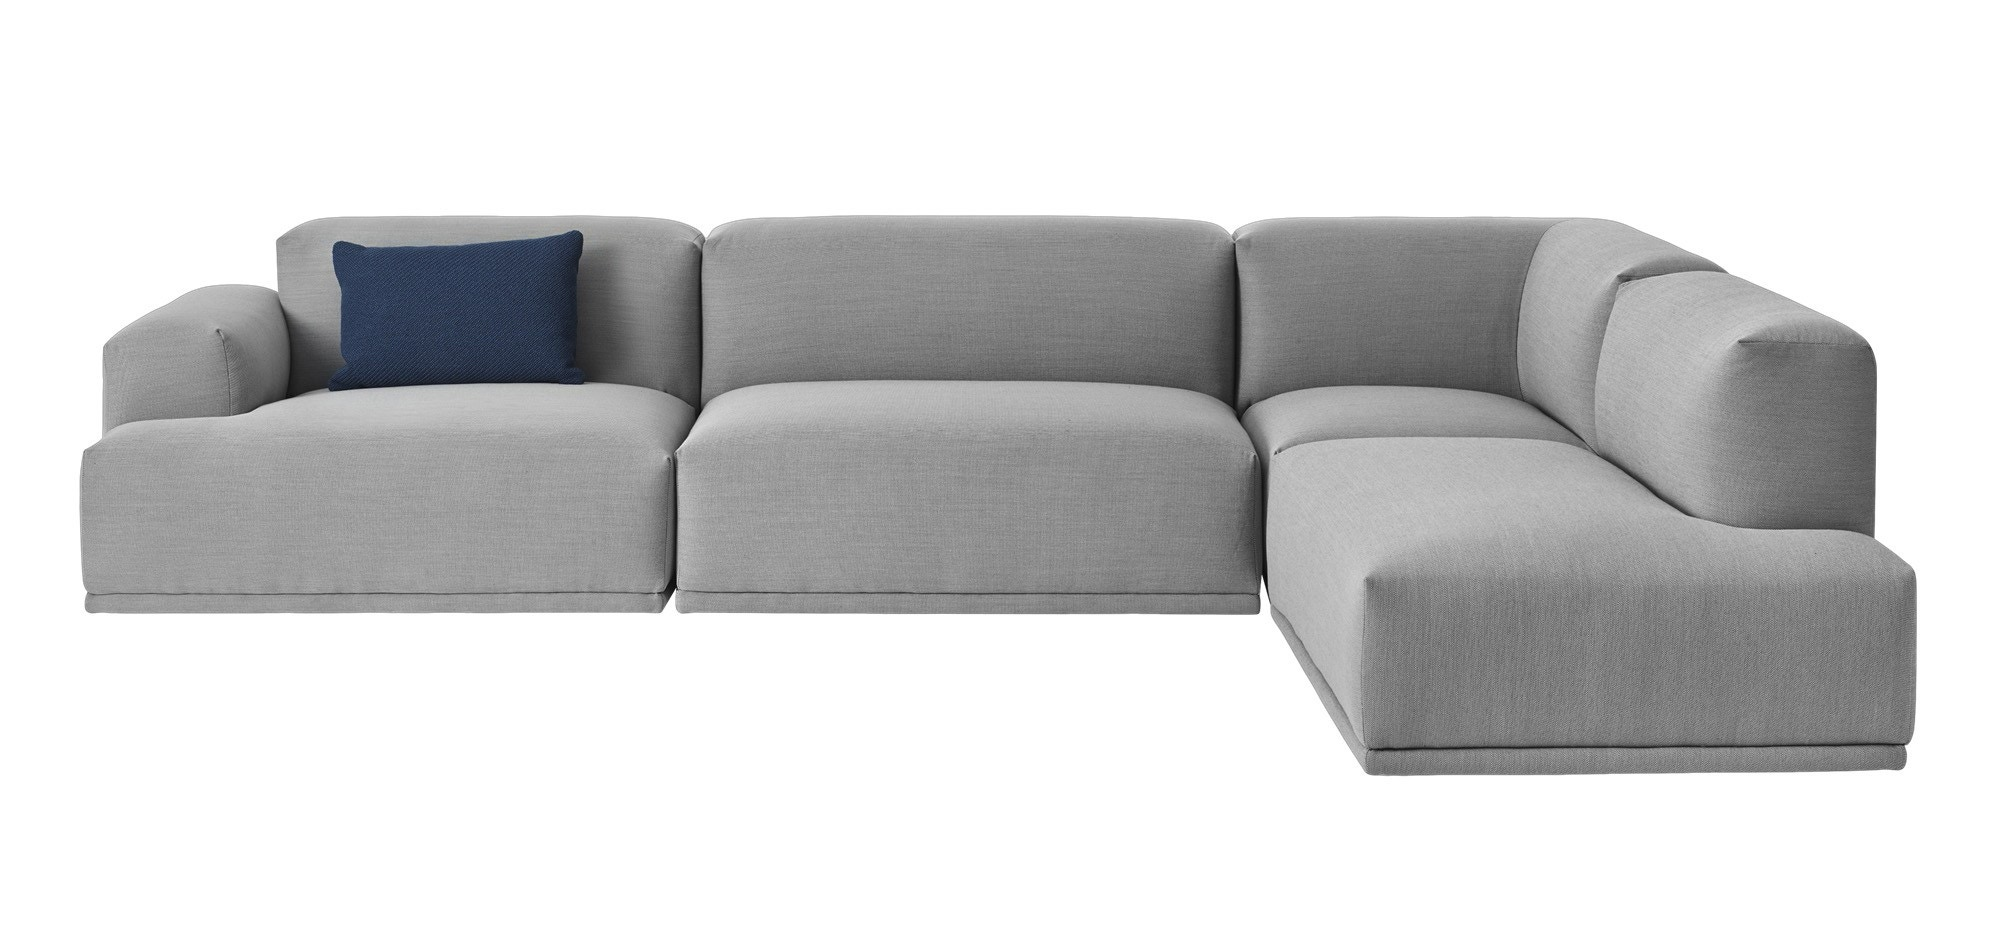 muuto connect modular sofa gr shop canada. Black Bedroom Furniture Sets. Home Design Ideas